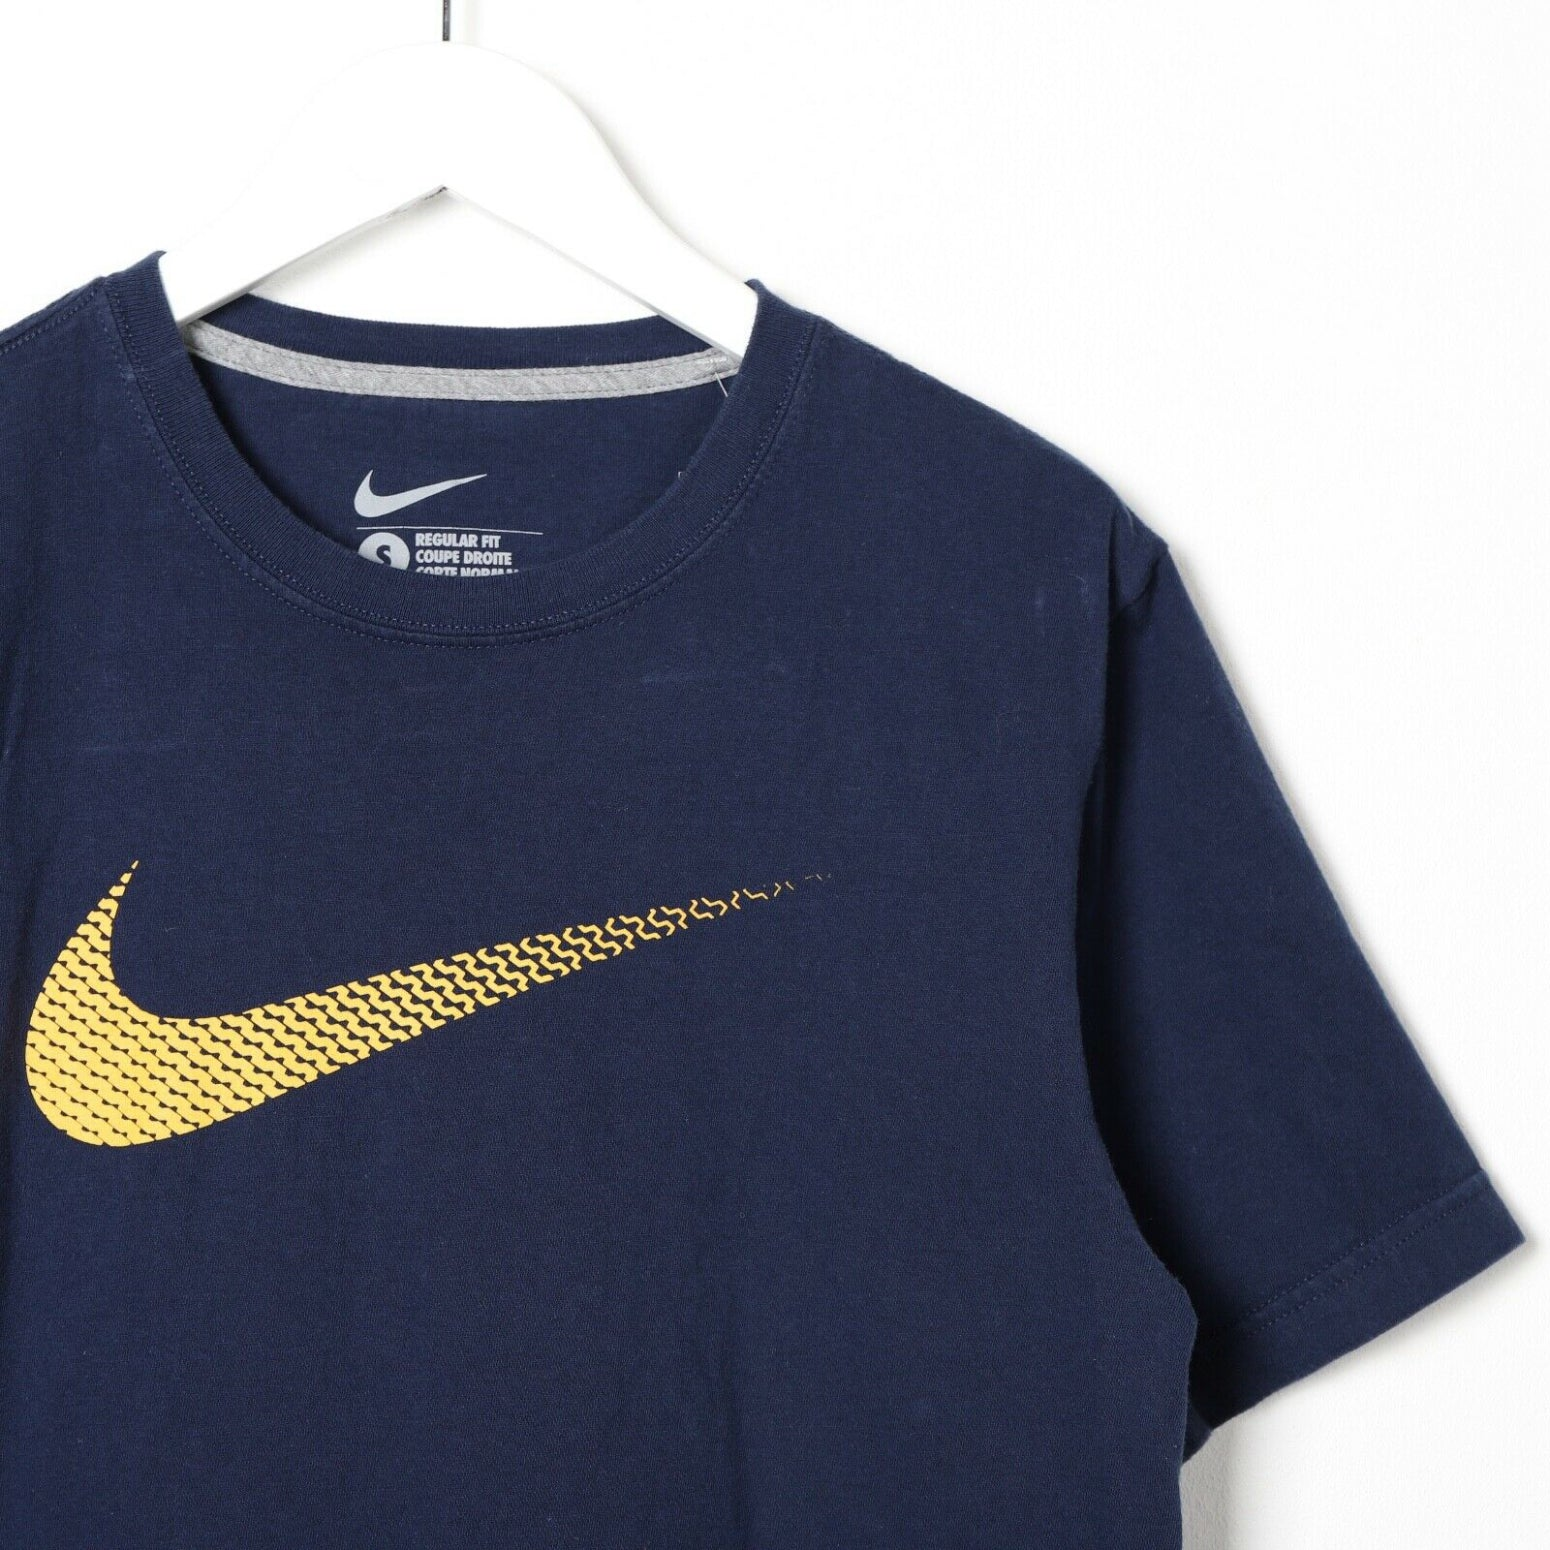 Vintage NIKE Graphic Logo T Shirt Tee Navy Small S